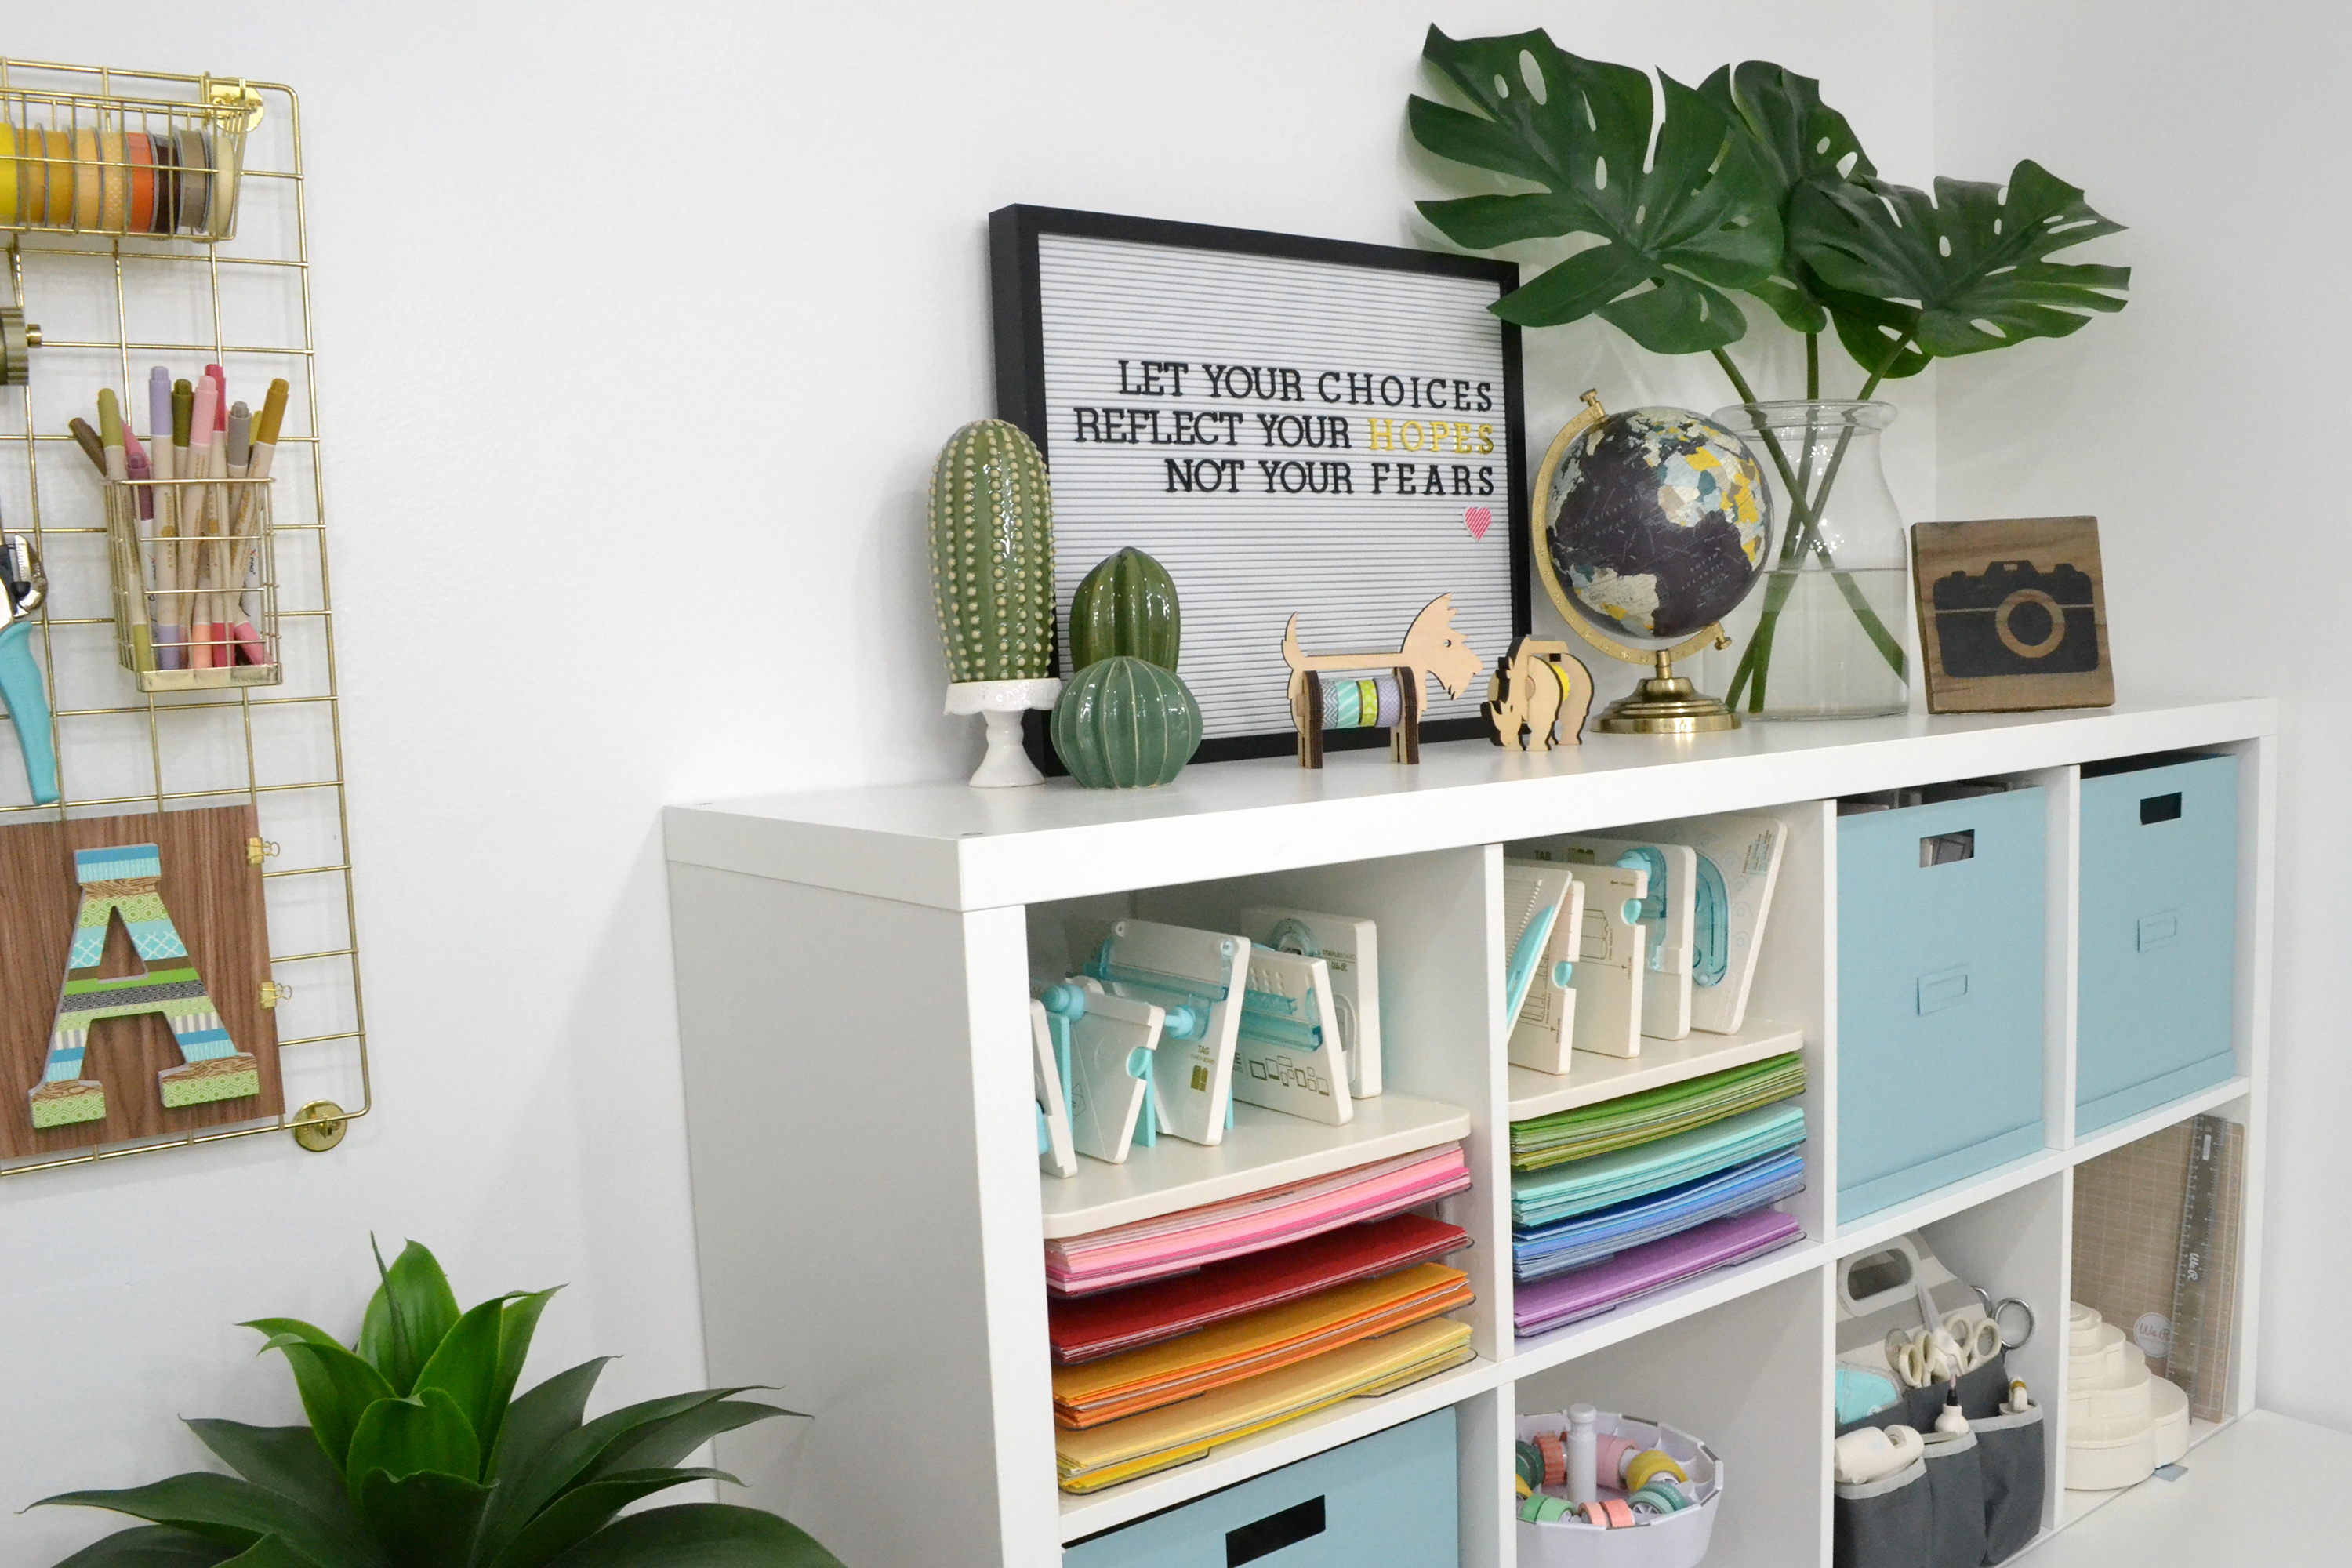 Craft Room Storage Tips by Aly Dosdall for We R Memory Keepers